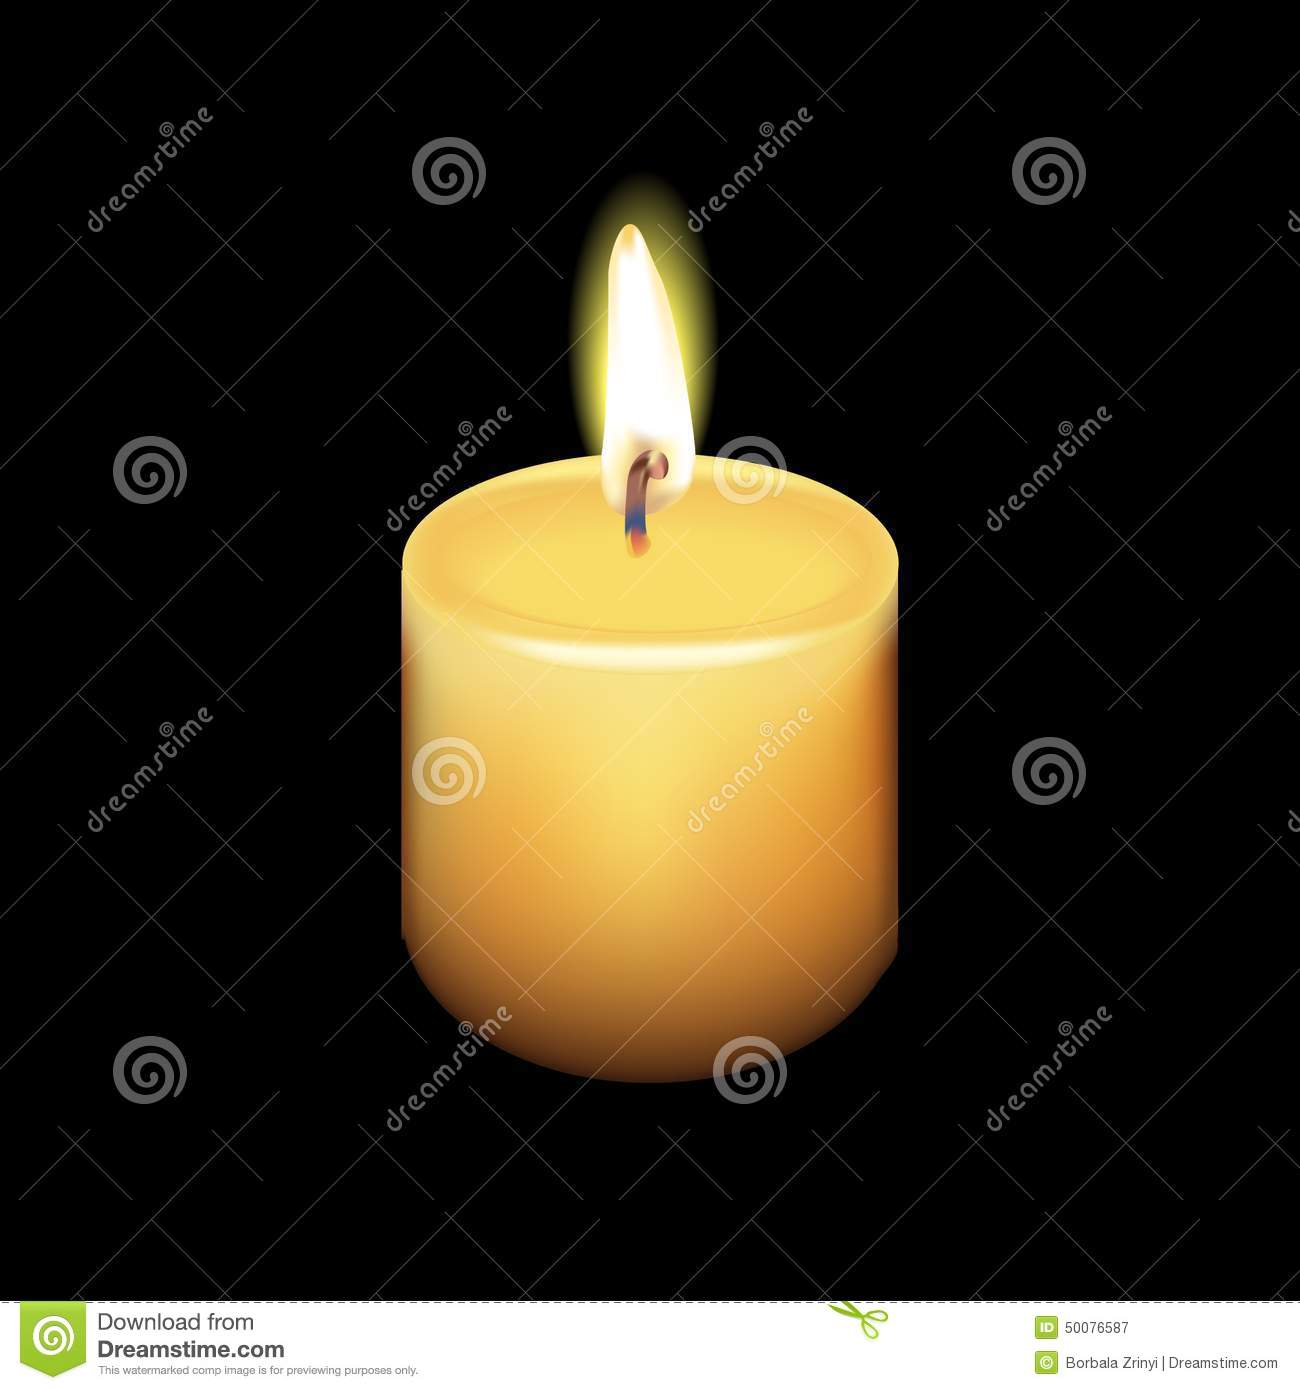 Realistic Candle Vector With Black Background Stock Vector ...